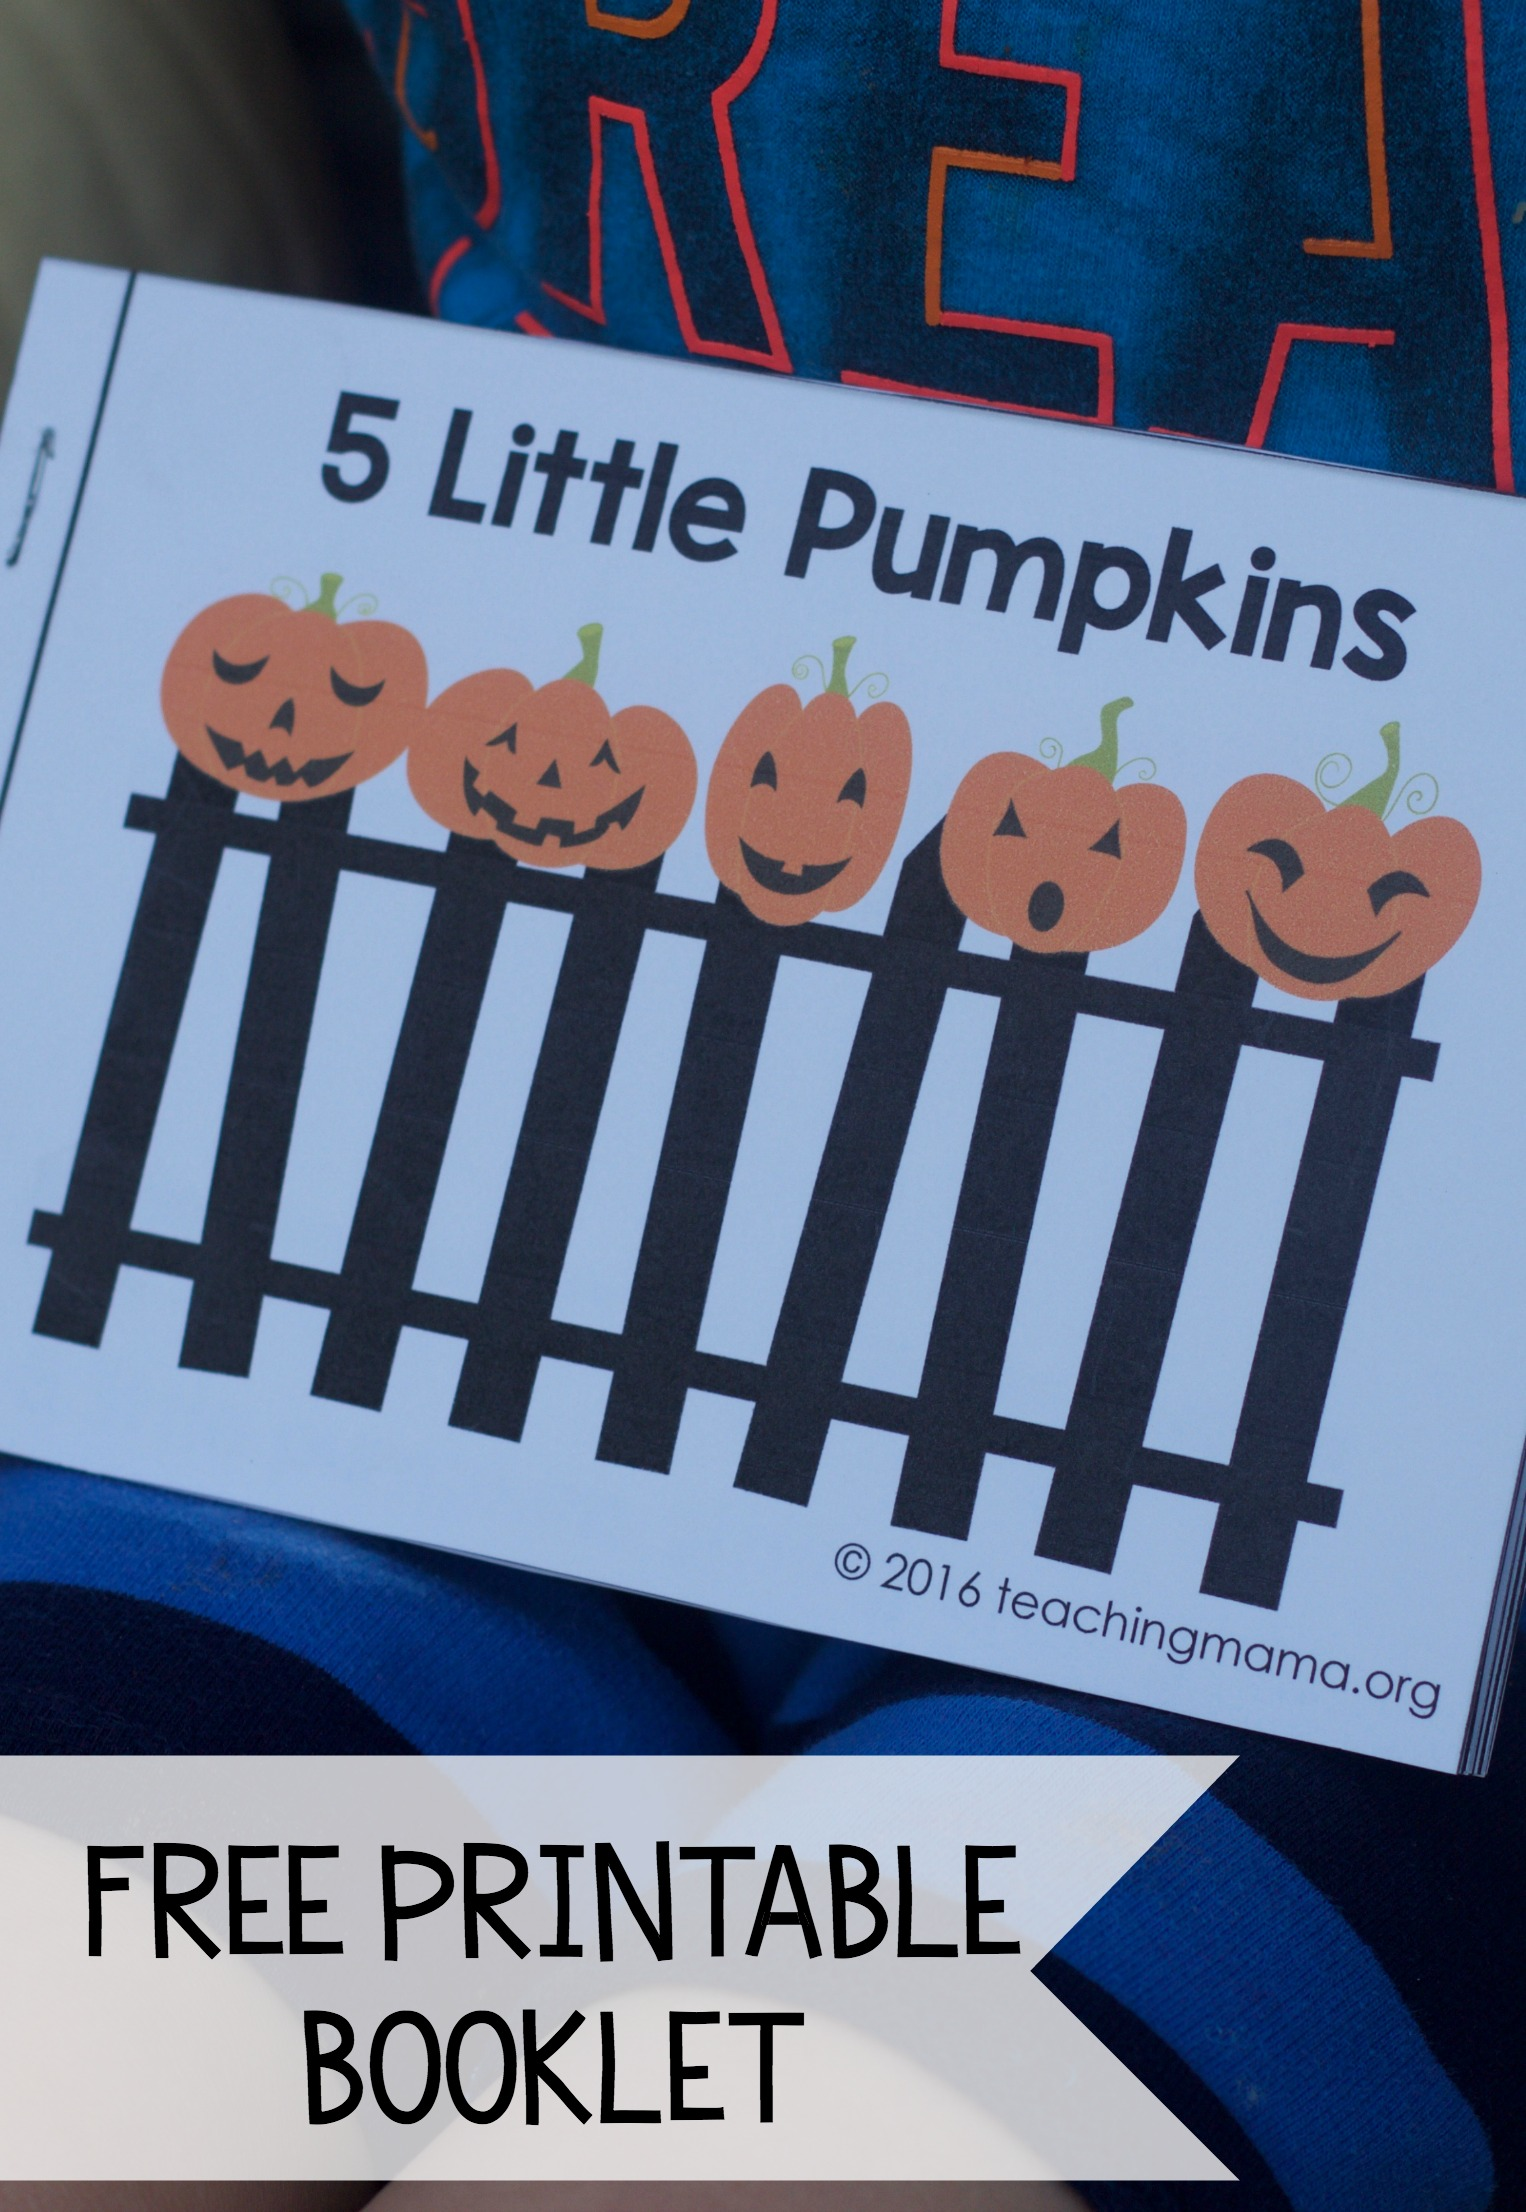 image relating to Five Little Pumpkins Printable named 5 Minimal Pumpkins - No cost Rhyme Booklet